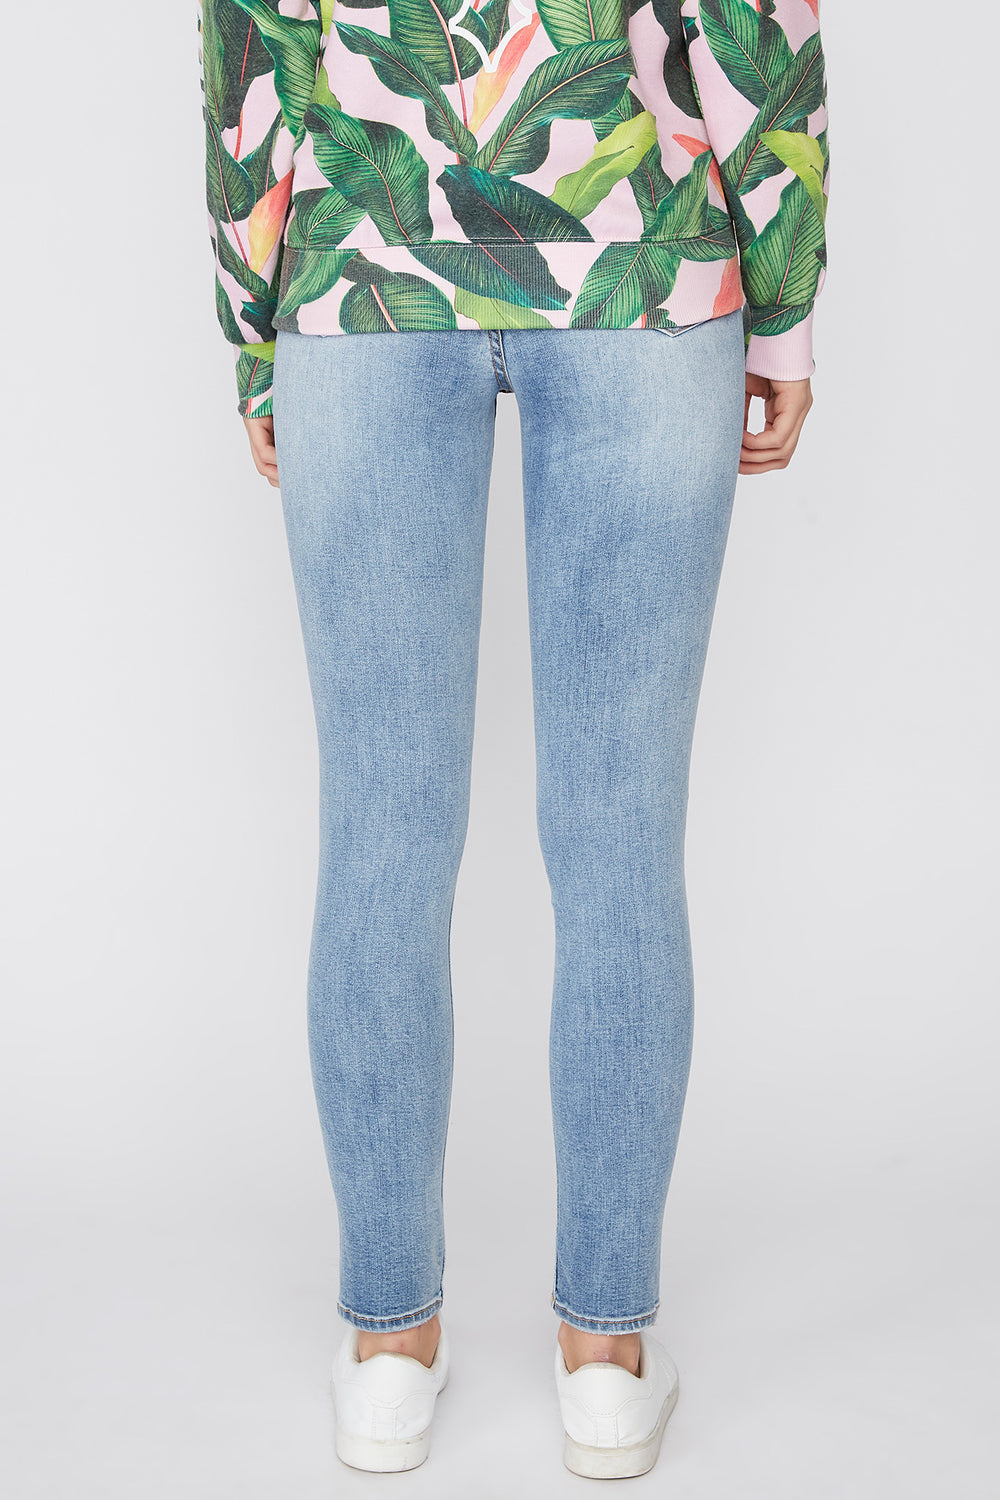 Zoo York Womens High Rise Jeans Medium Blue